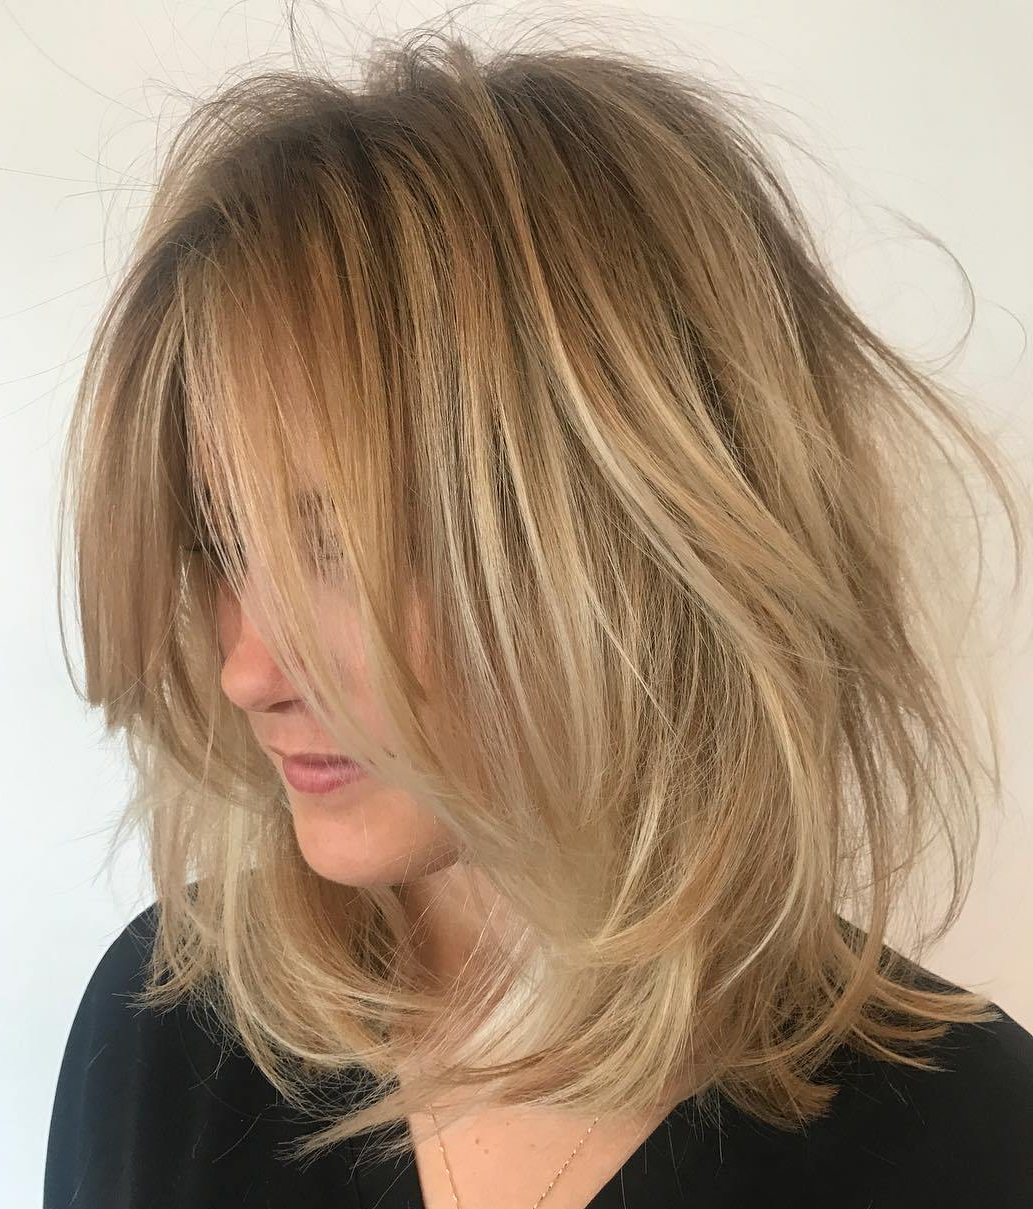 70 Devastatingly Cool Haircuts For Thin Hair Regarding Tousled Wavy Blonde Bob Hairstyles (Gallery 6 of 25)